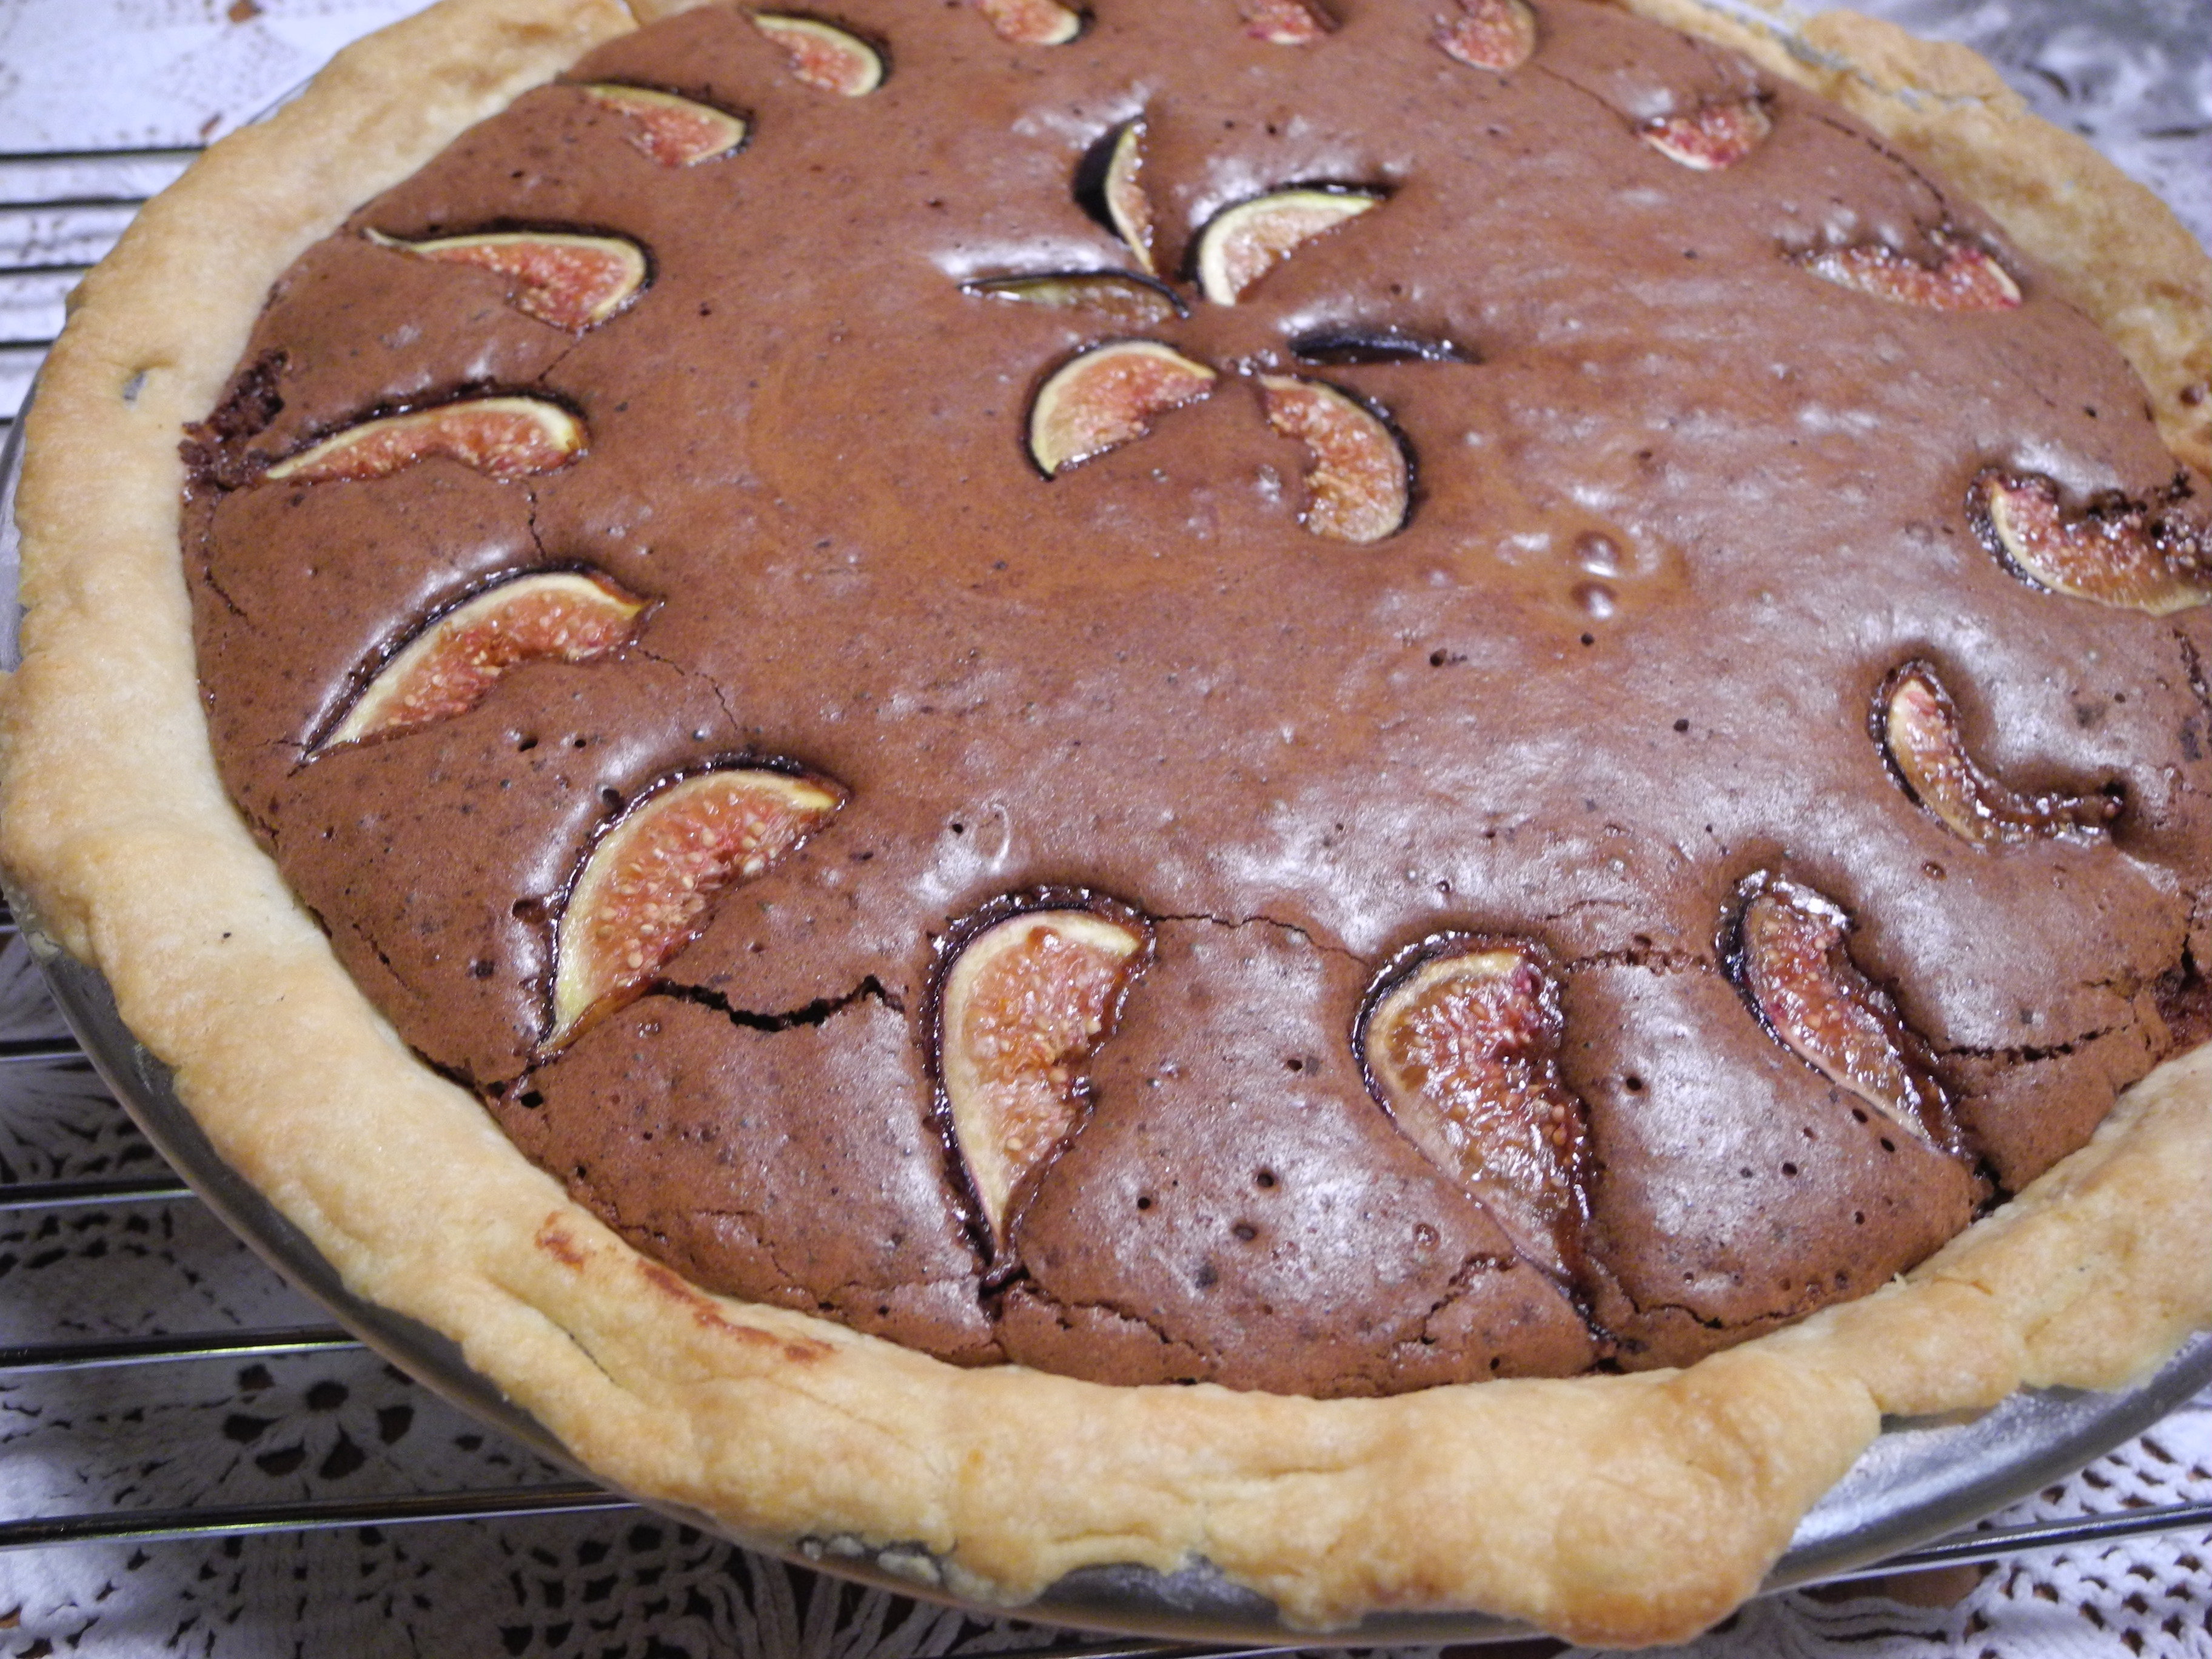 Chocolate cream pie with figs